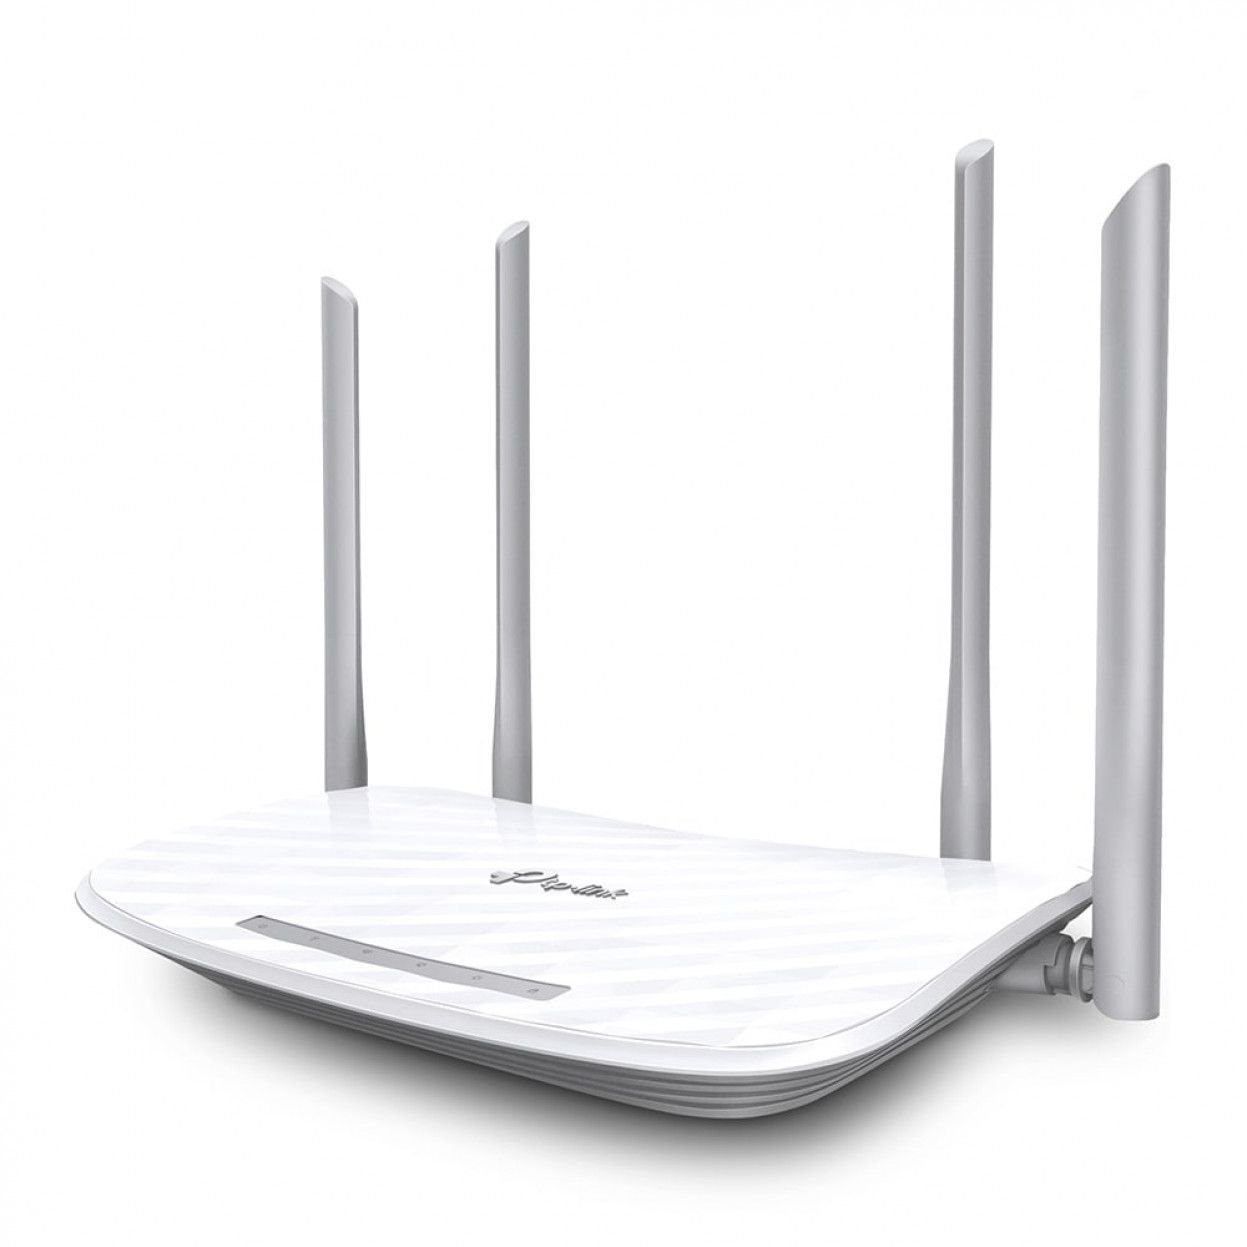 TP-LINK ARCHER C5 (Provedor) router AC1200 Dual Band GIGA